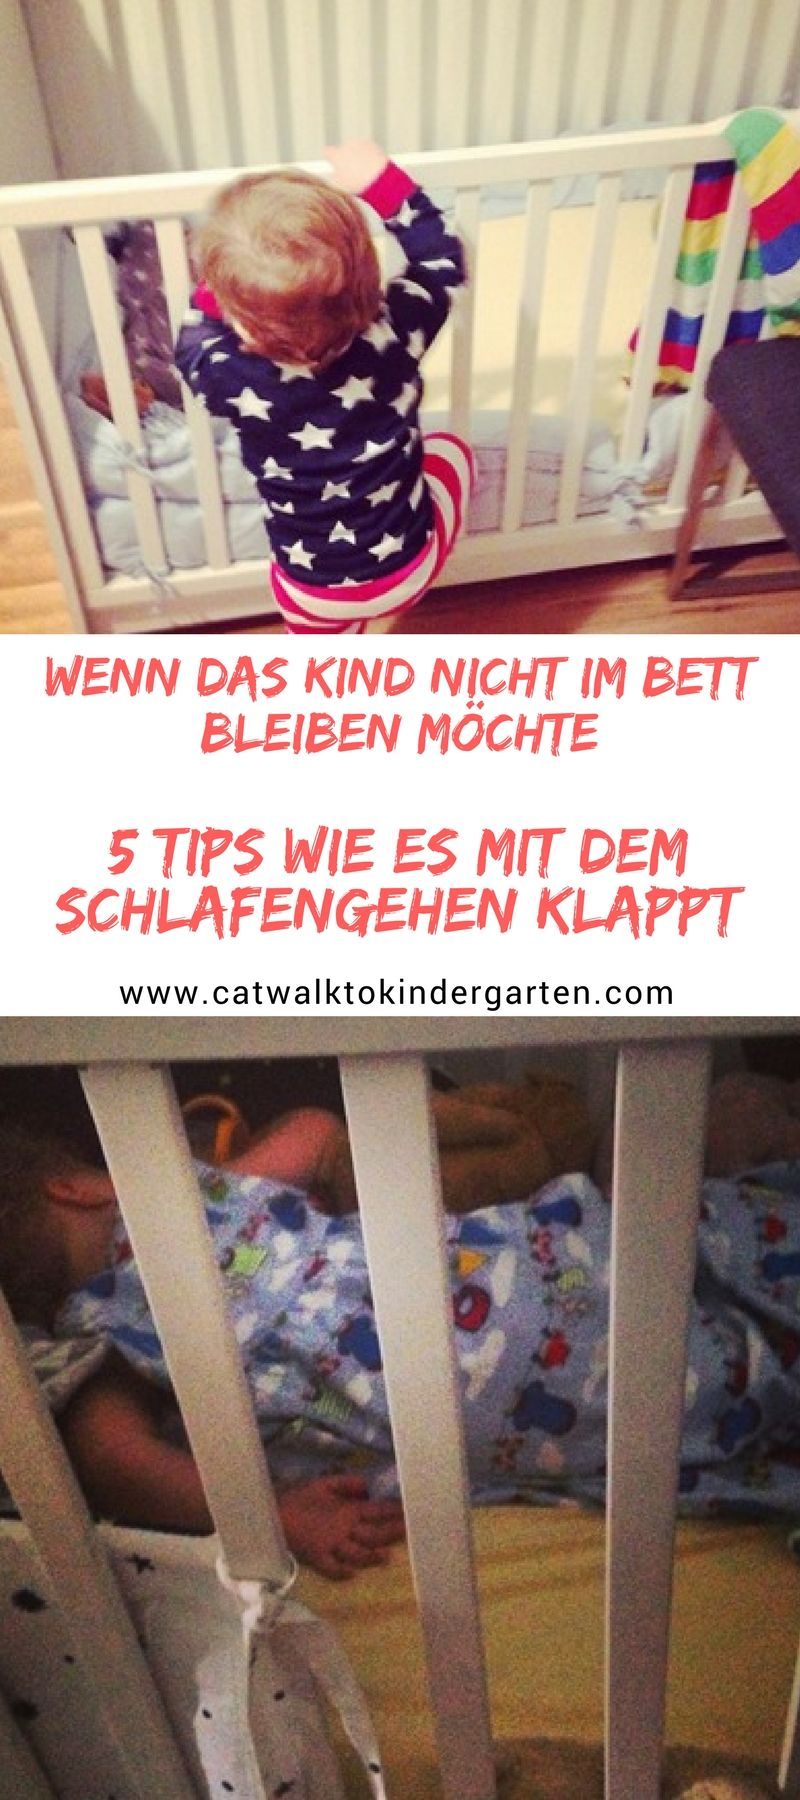 wenn das kind nicht im bett bleiben will catwalk to kindergarten blog pinterest manchmal. Black Bedroom Furniture Sets. Home Design Ideas